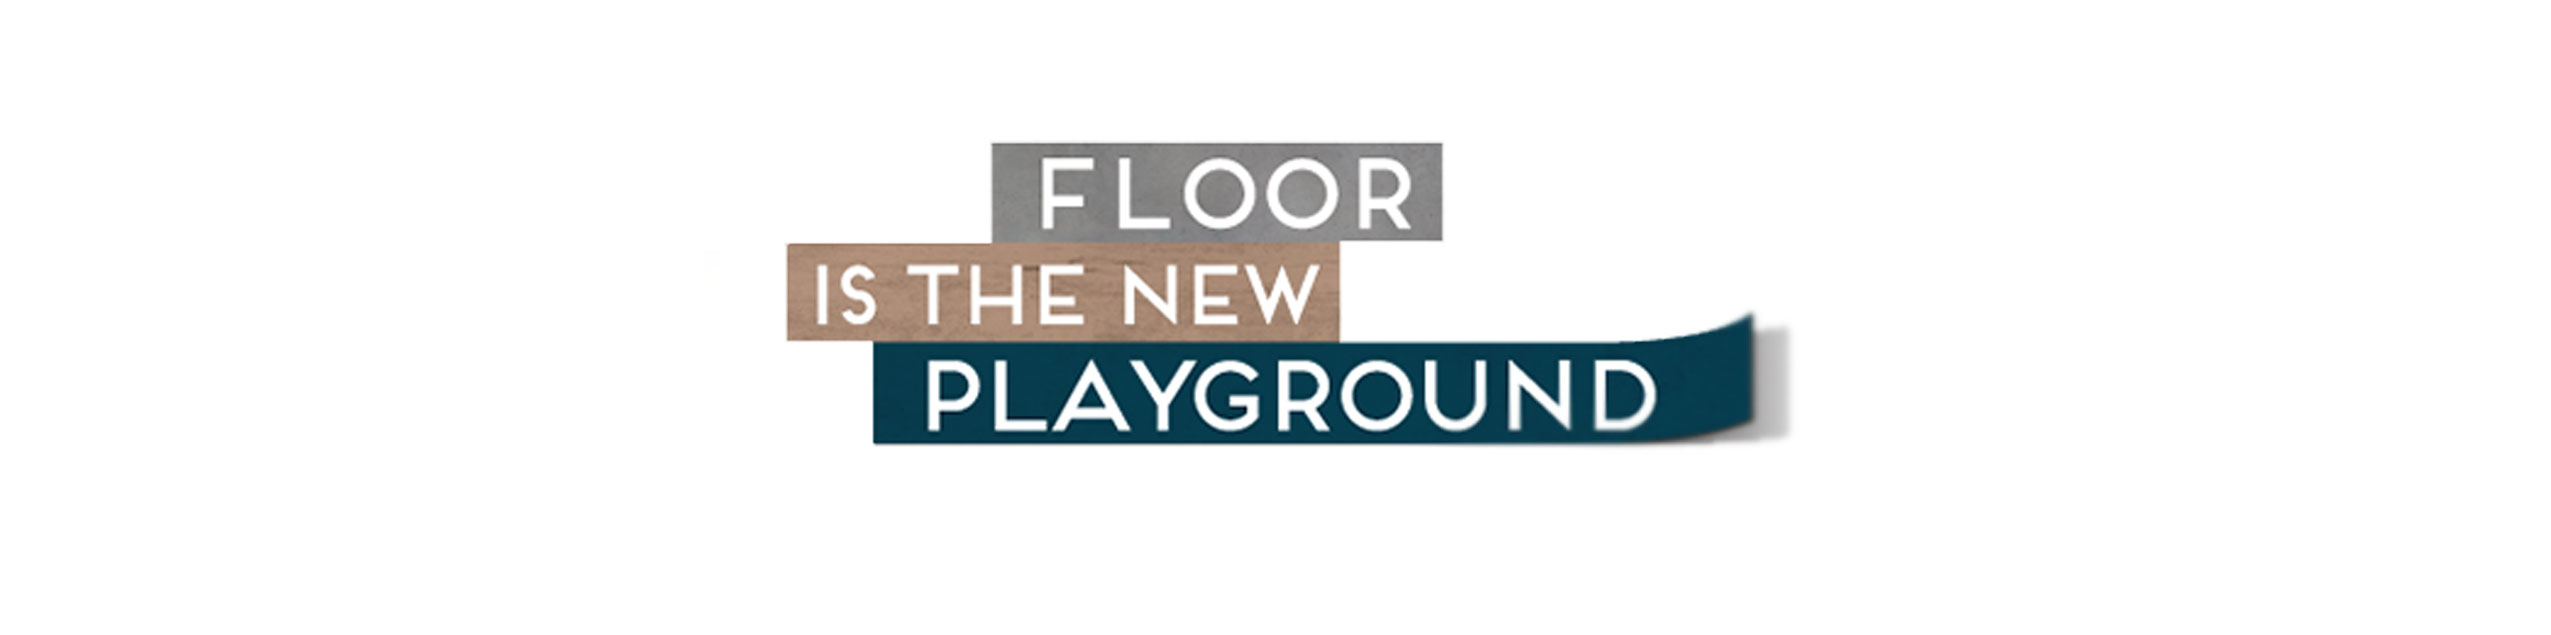 floor-is-the-new-playground2